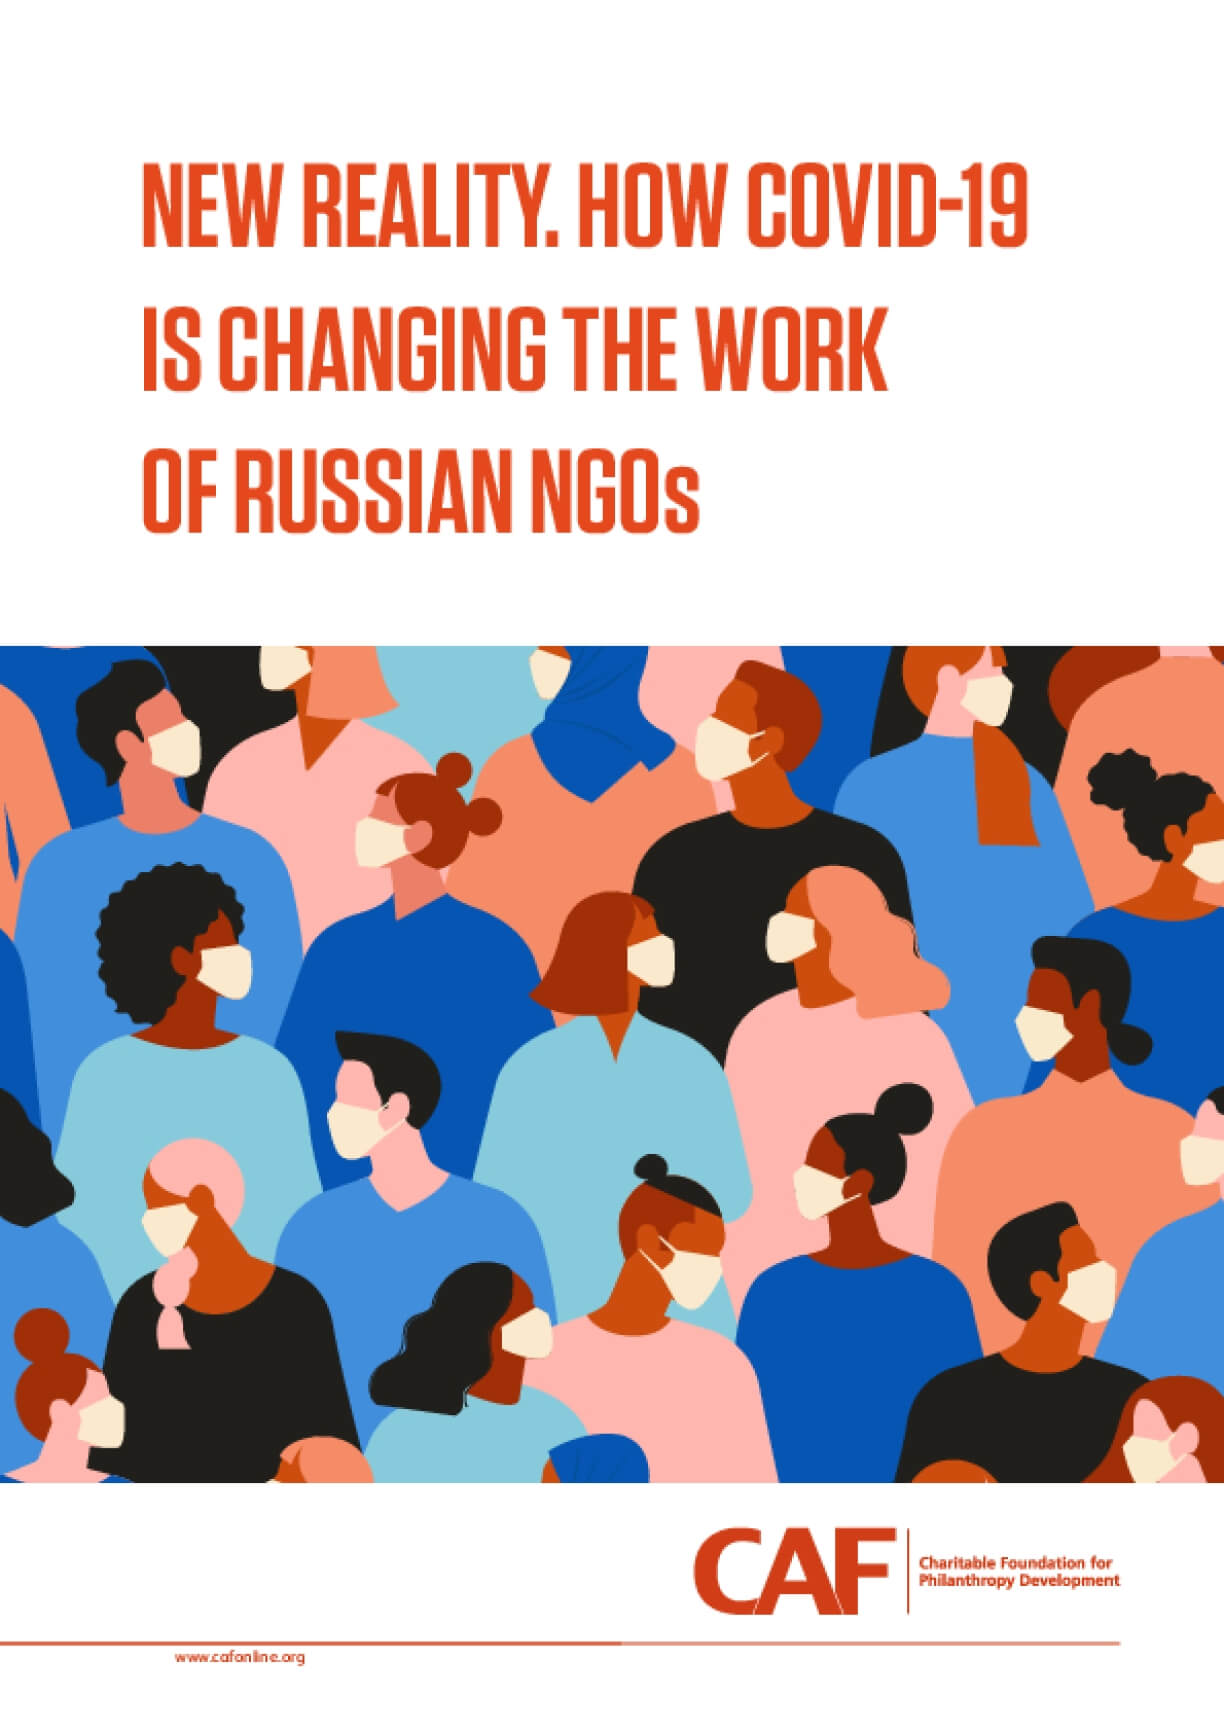 New Reality. How COVID-19 Is Changing the Work of Russian NGOs